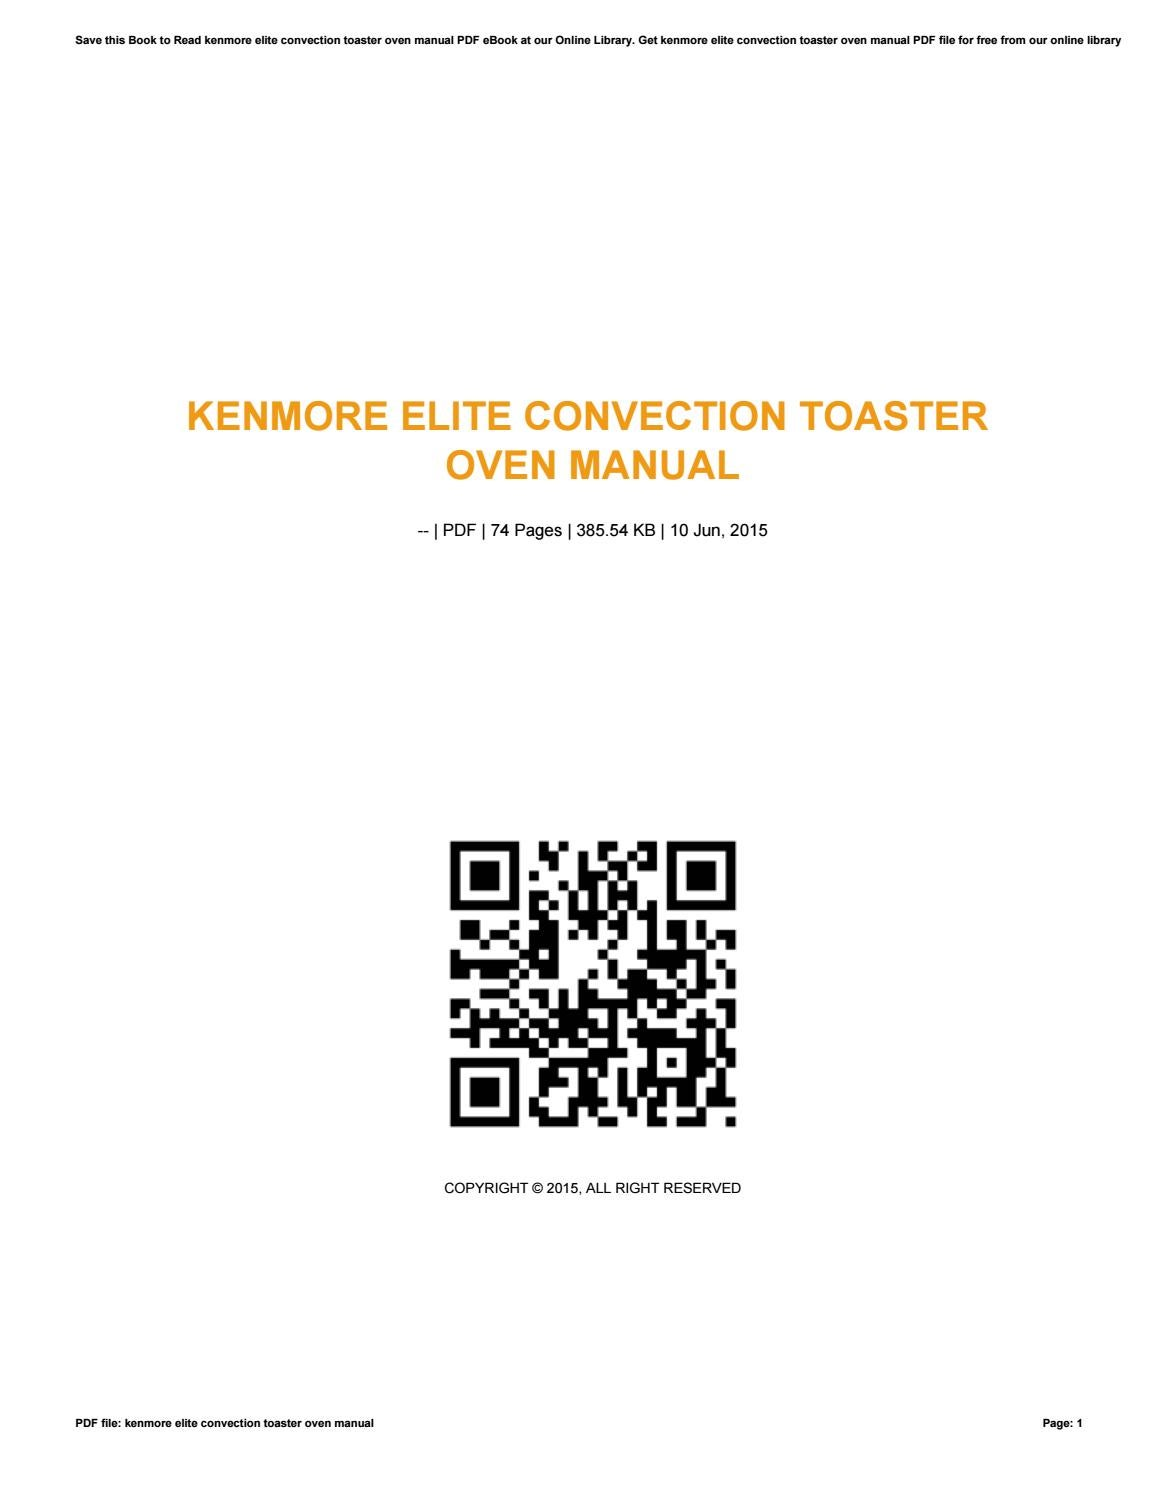 Kenmore Elite Convection Toaster Oven Manual By E671 Issuu